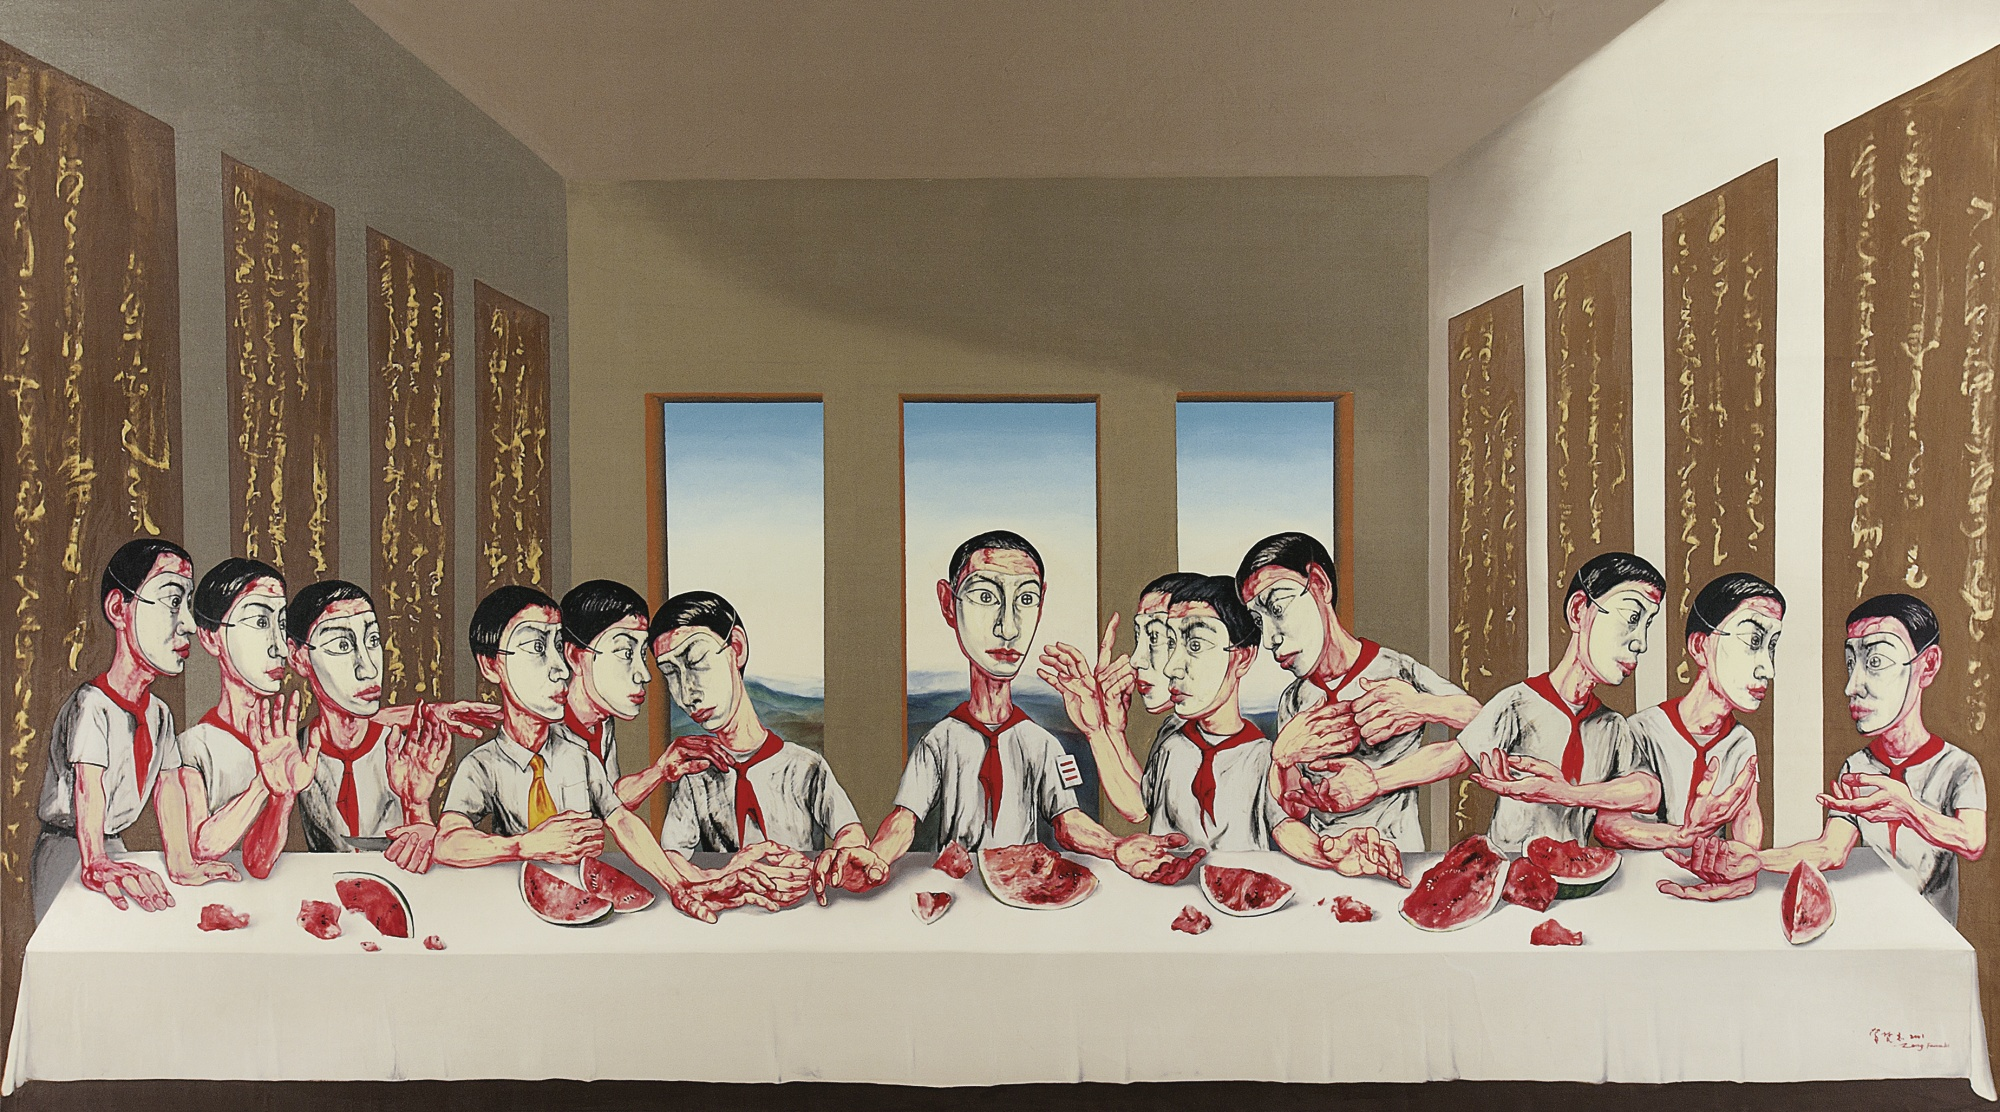 Zeng Fanzhi (The Last Supper)